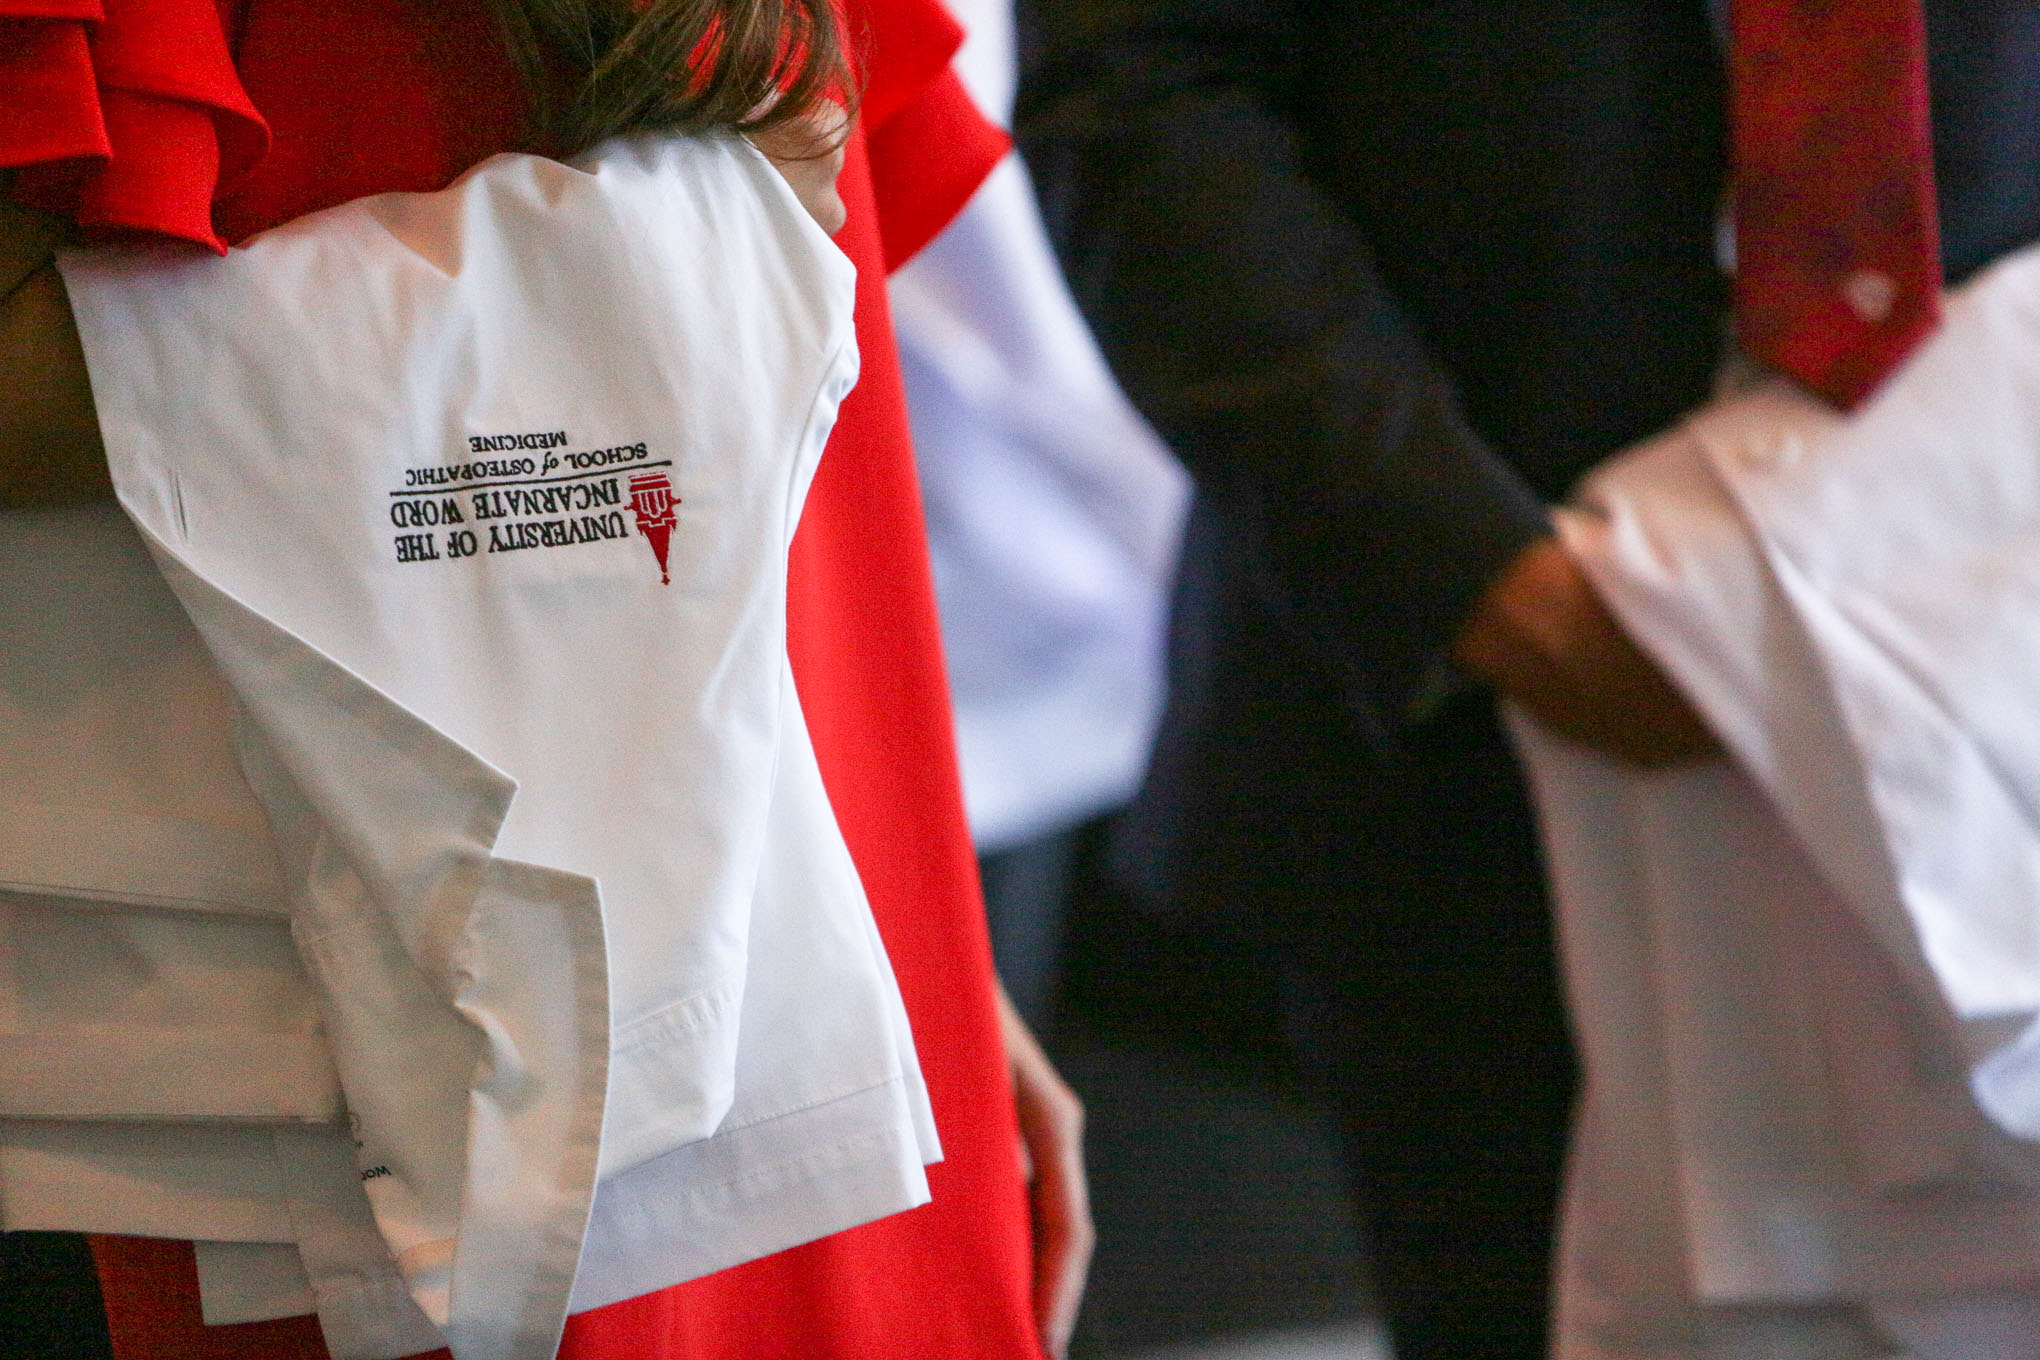 A white coat is draped across a students arm as she arrives to the ceremony.